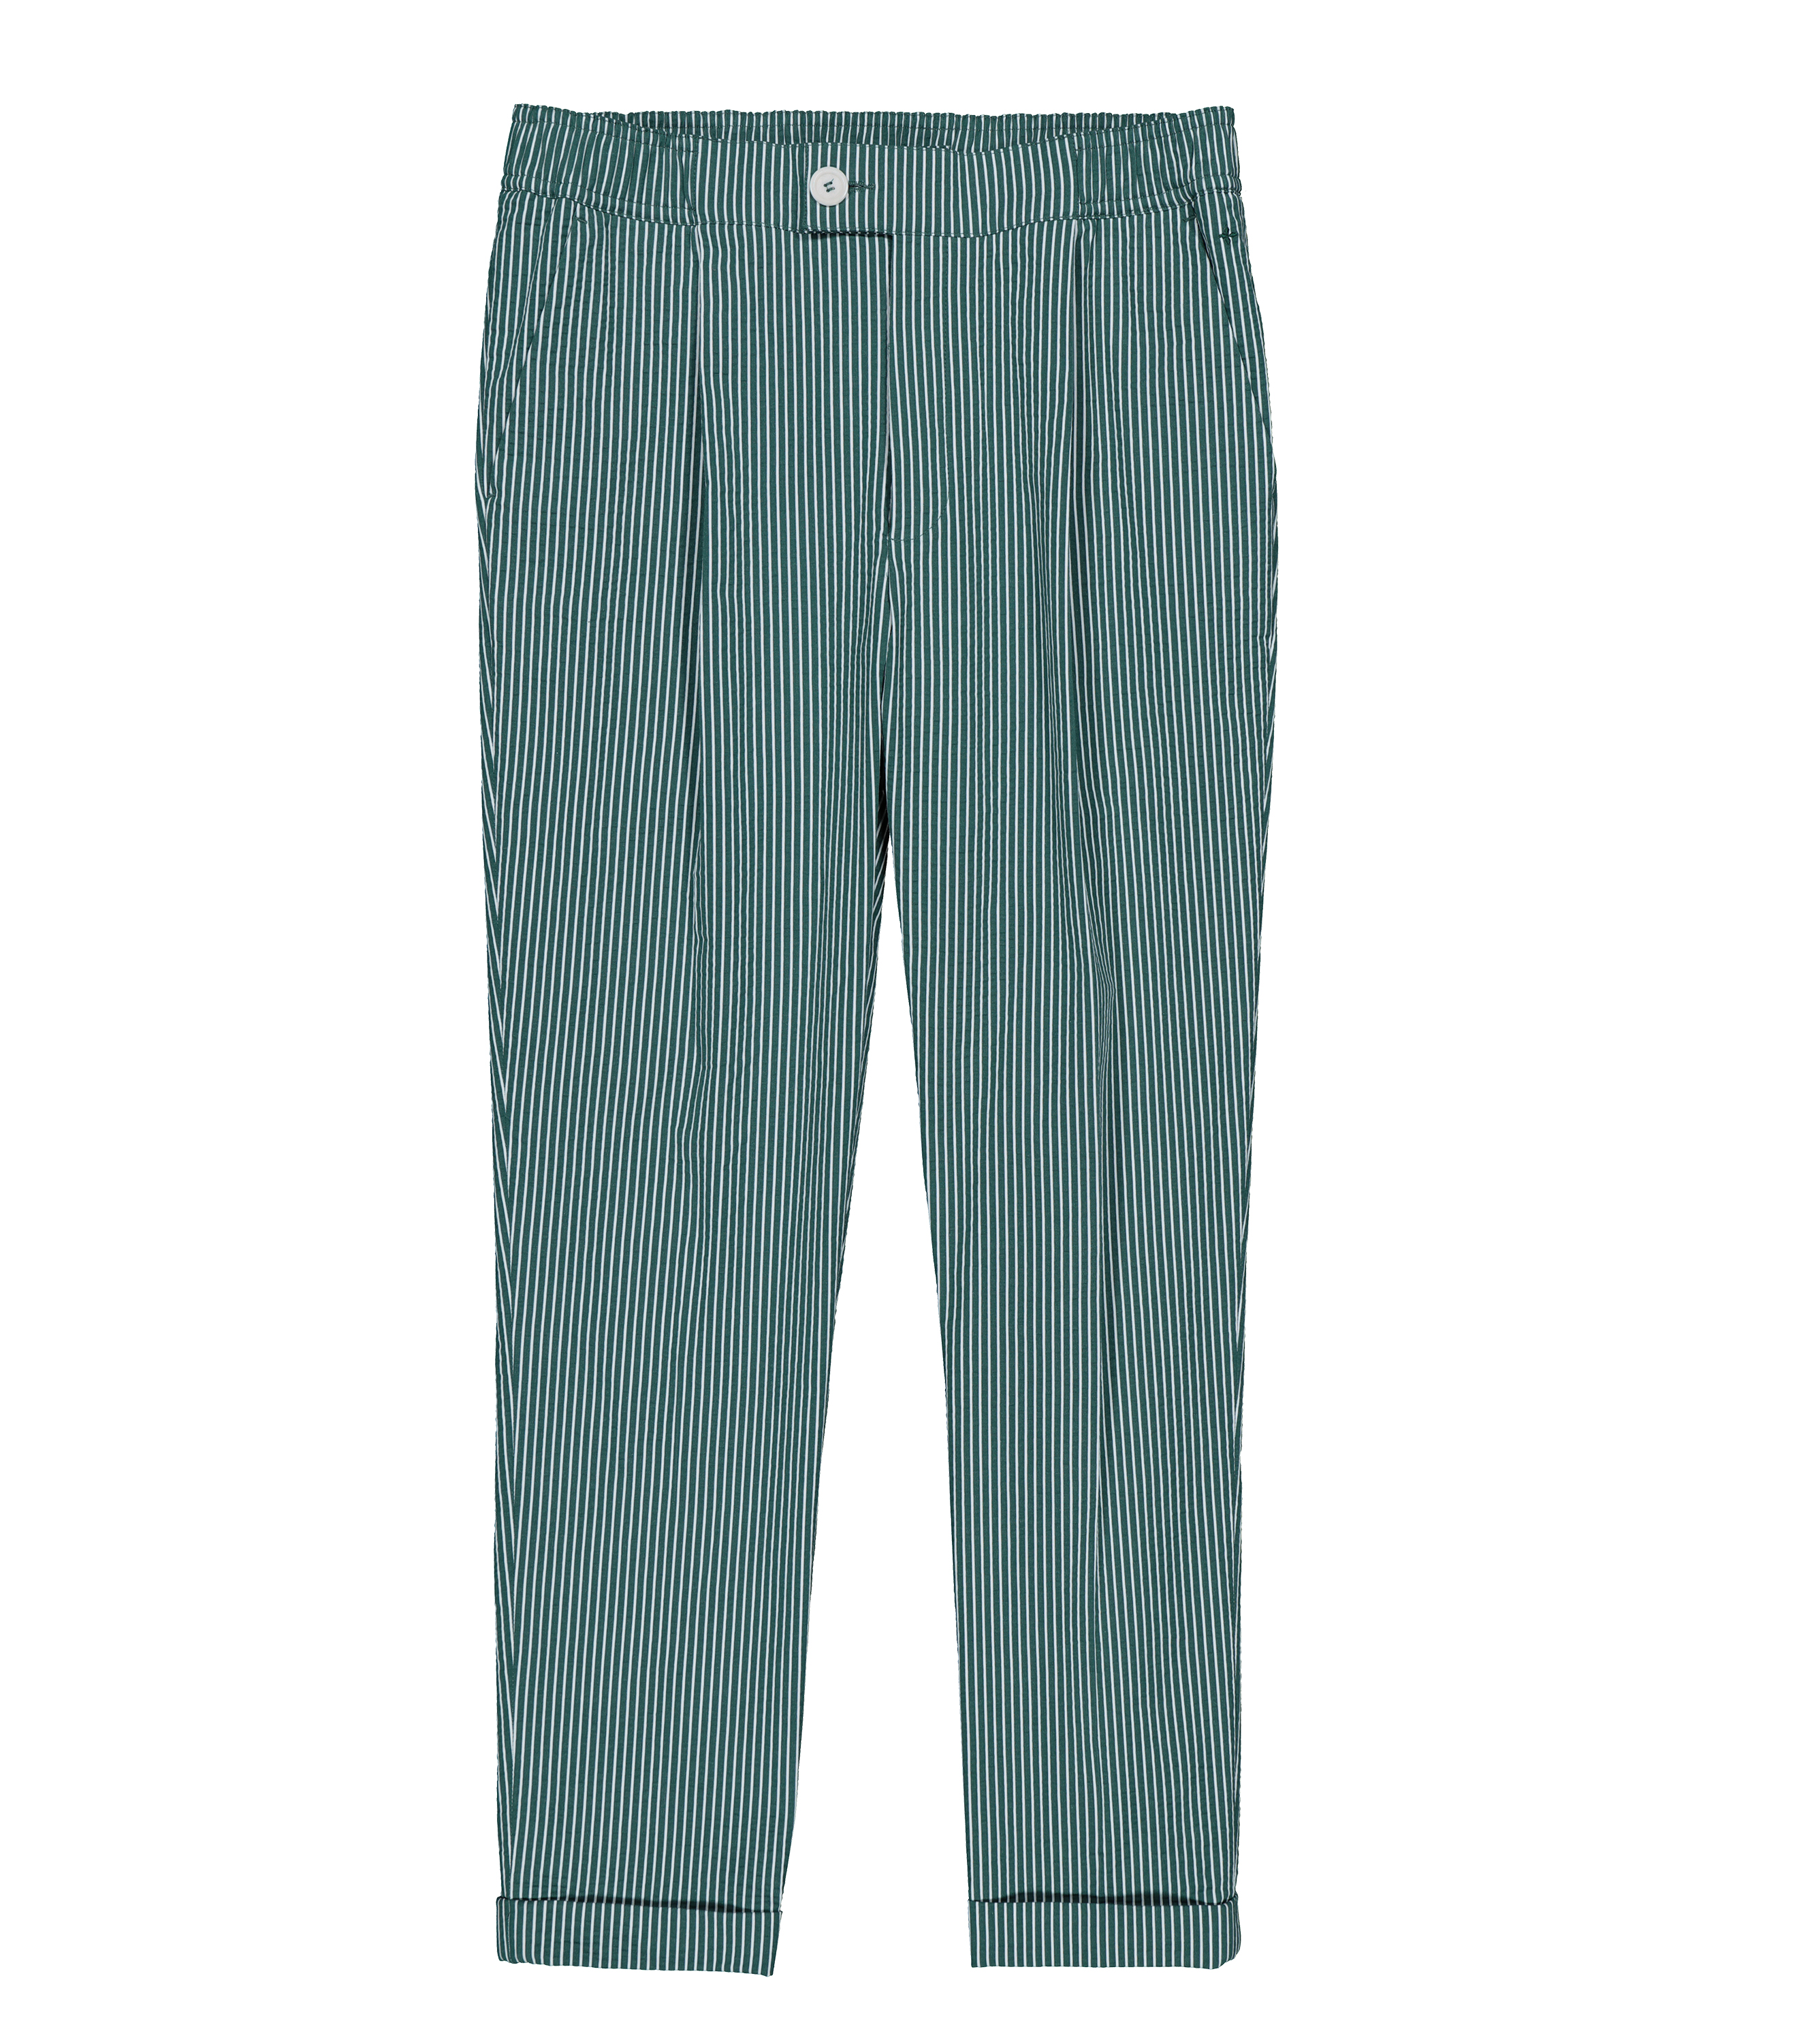 PANTS GN11 - Green stripes